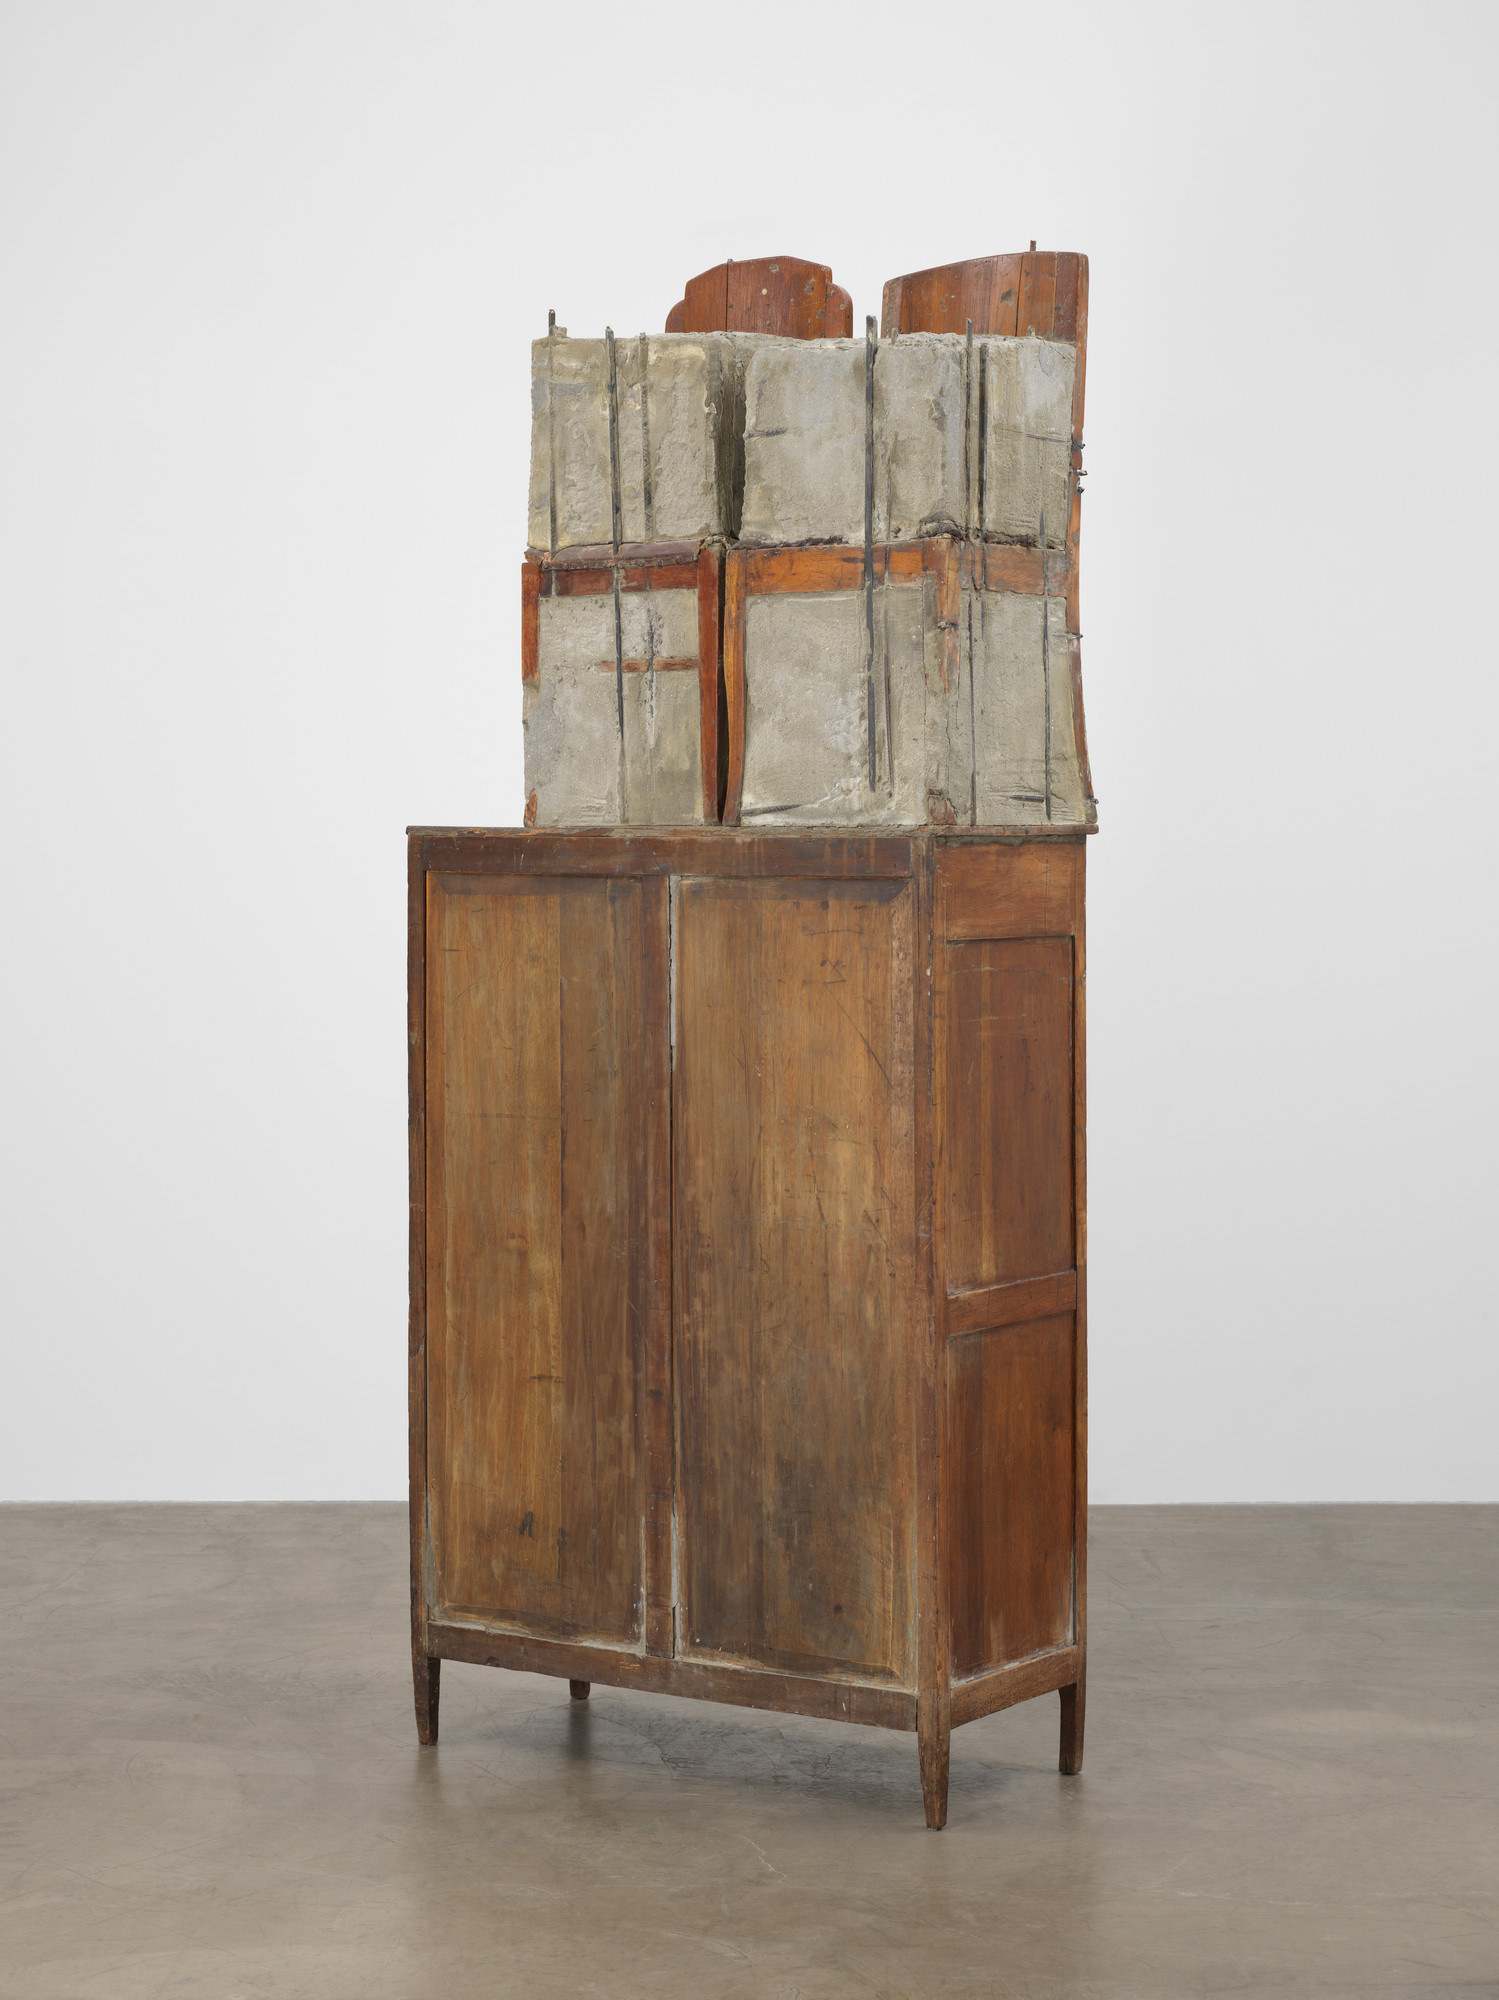 Doris Salcedo. Untitled. 1995